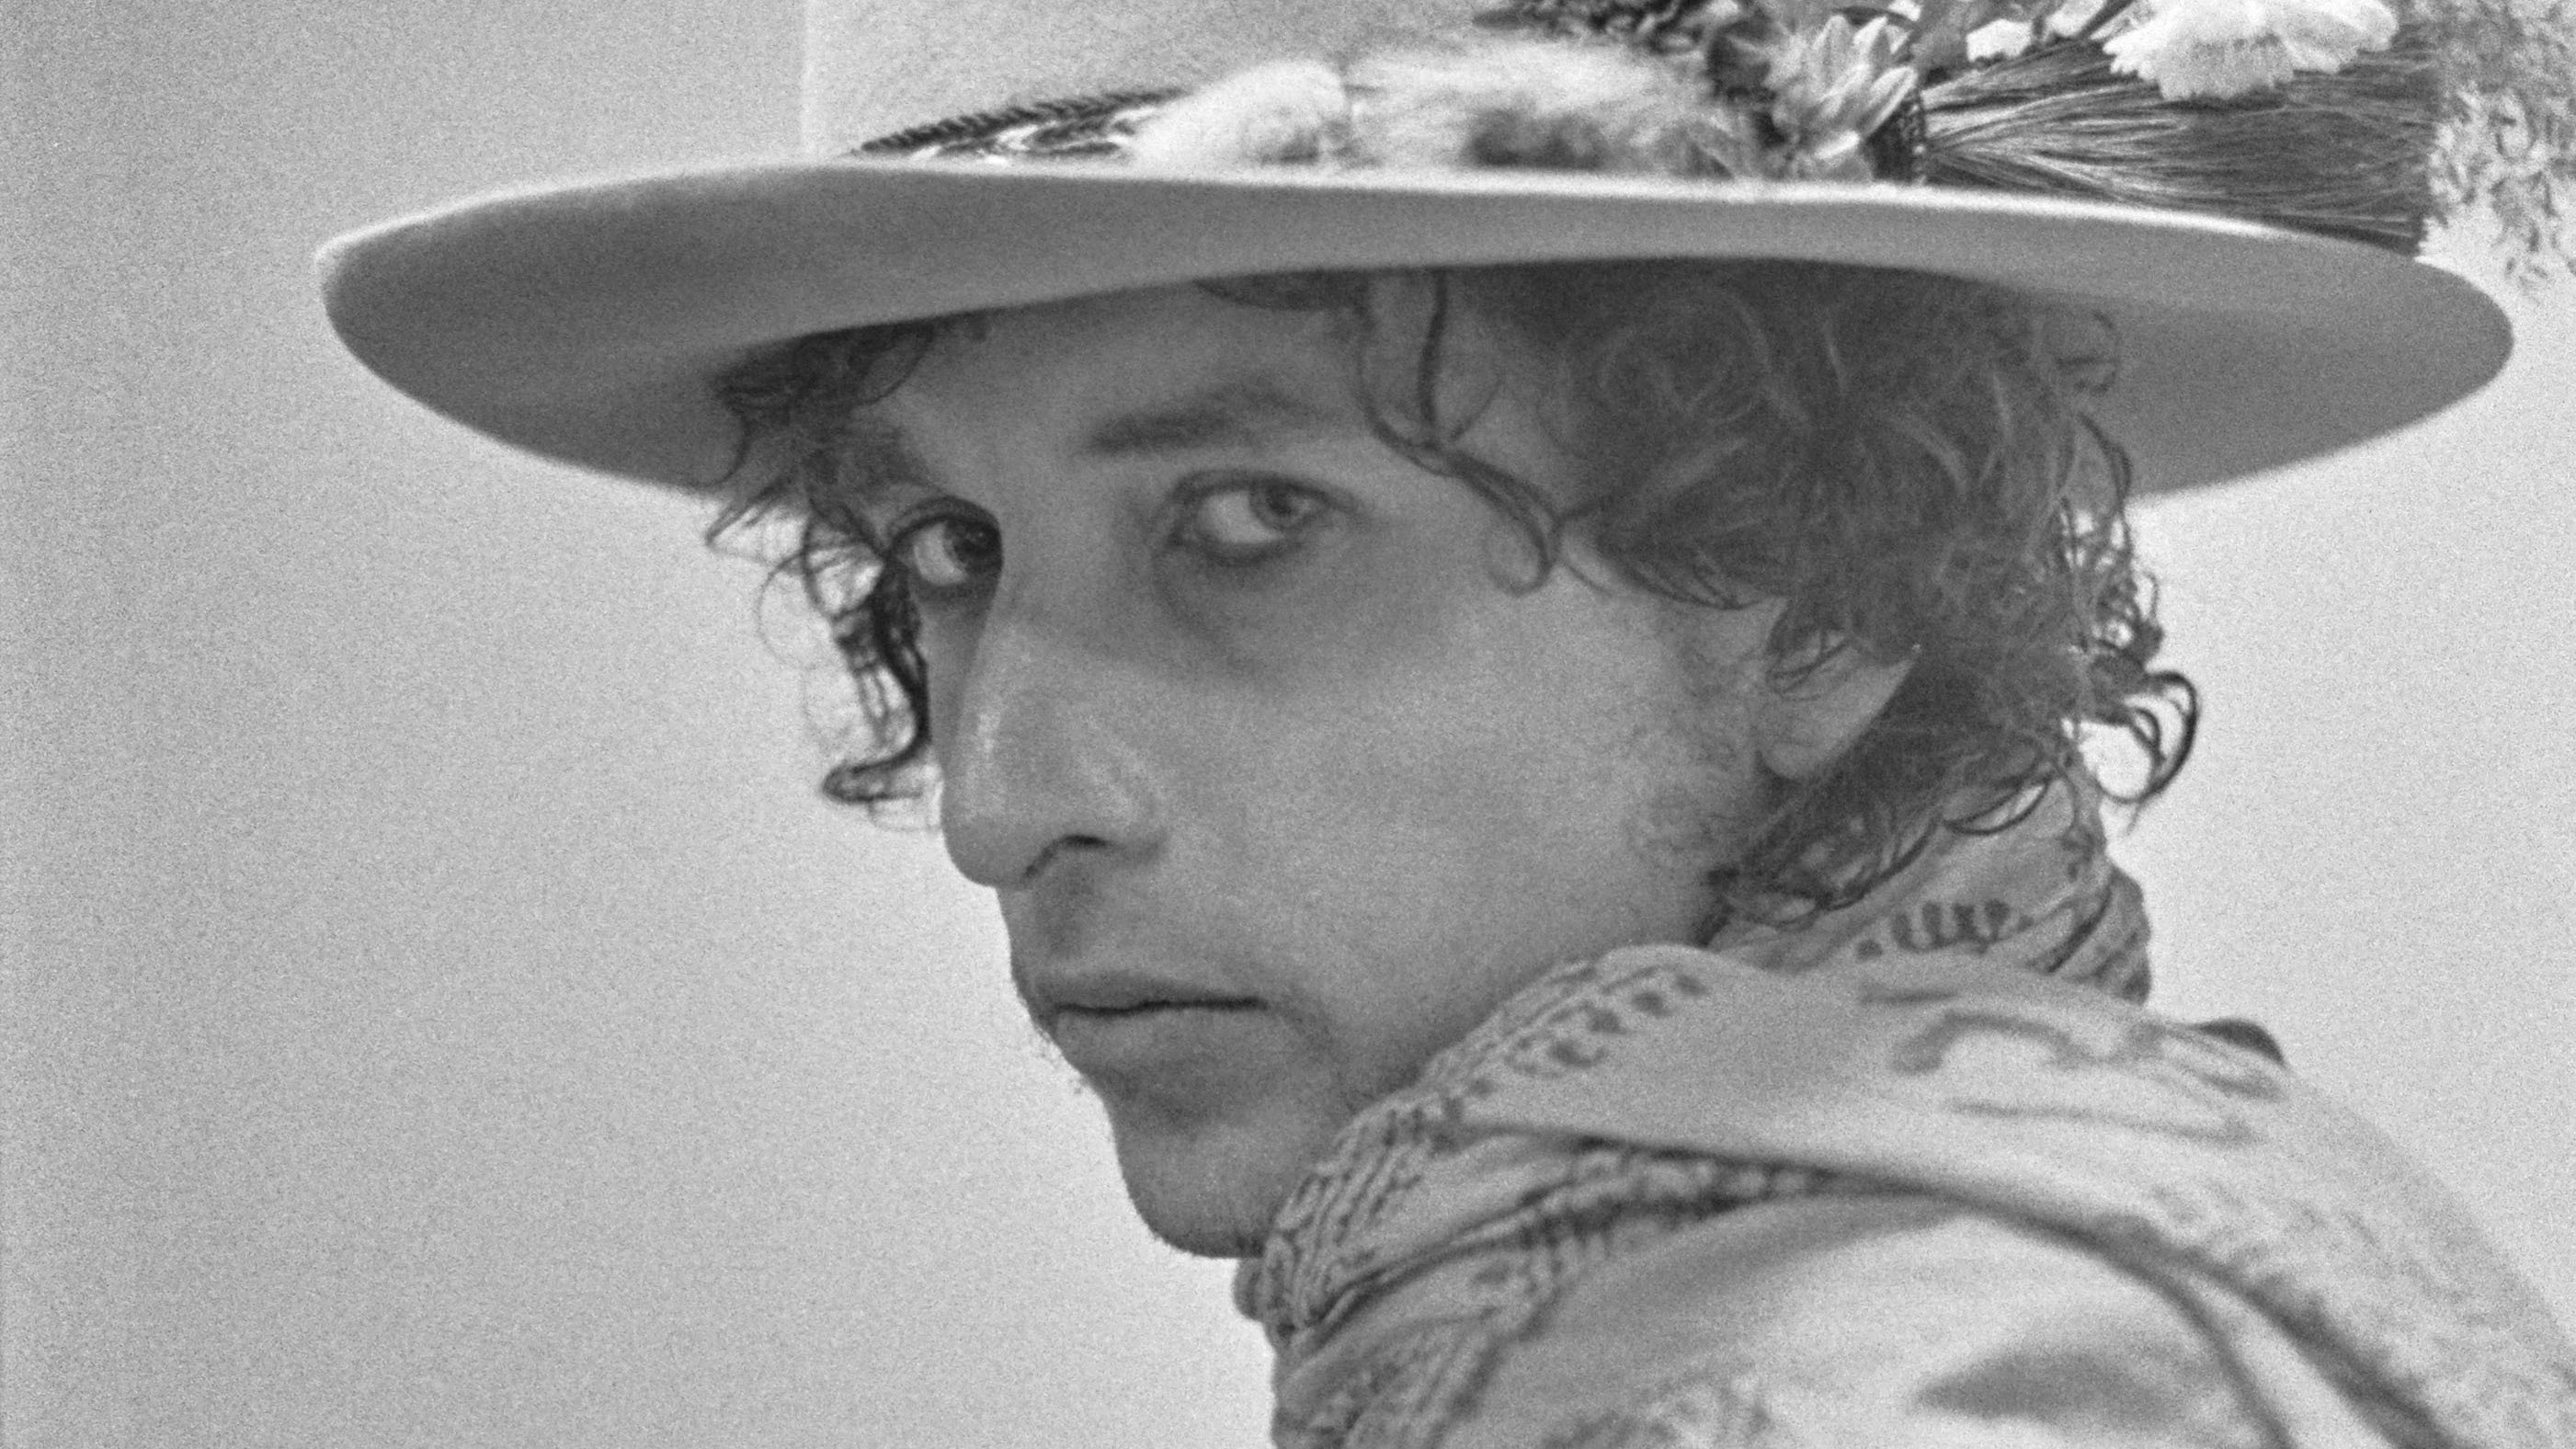 Bob Dylan's 'Rolling Thunder Revue' Revived The Rock Concert Ritual